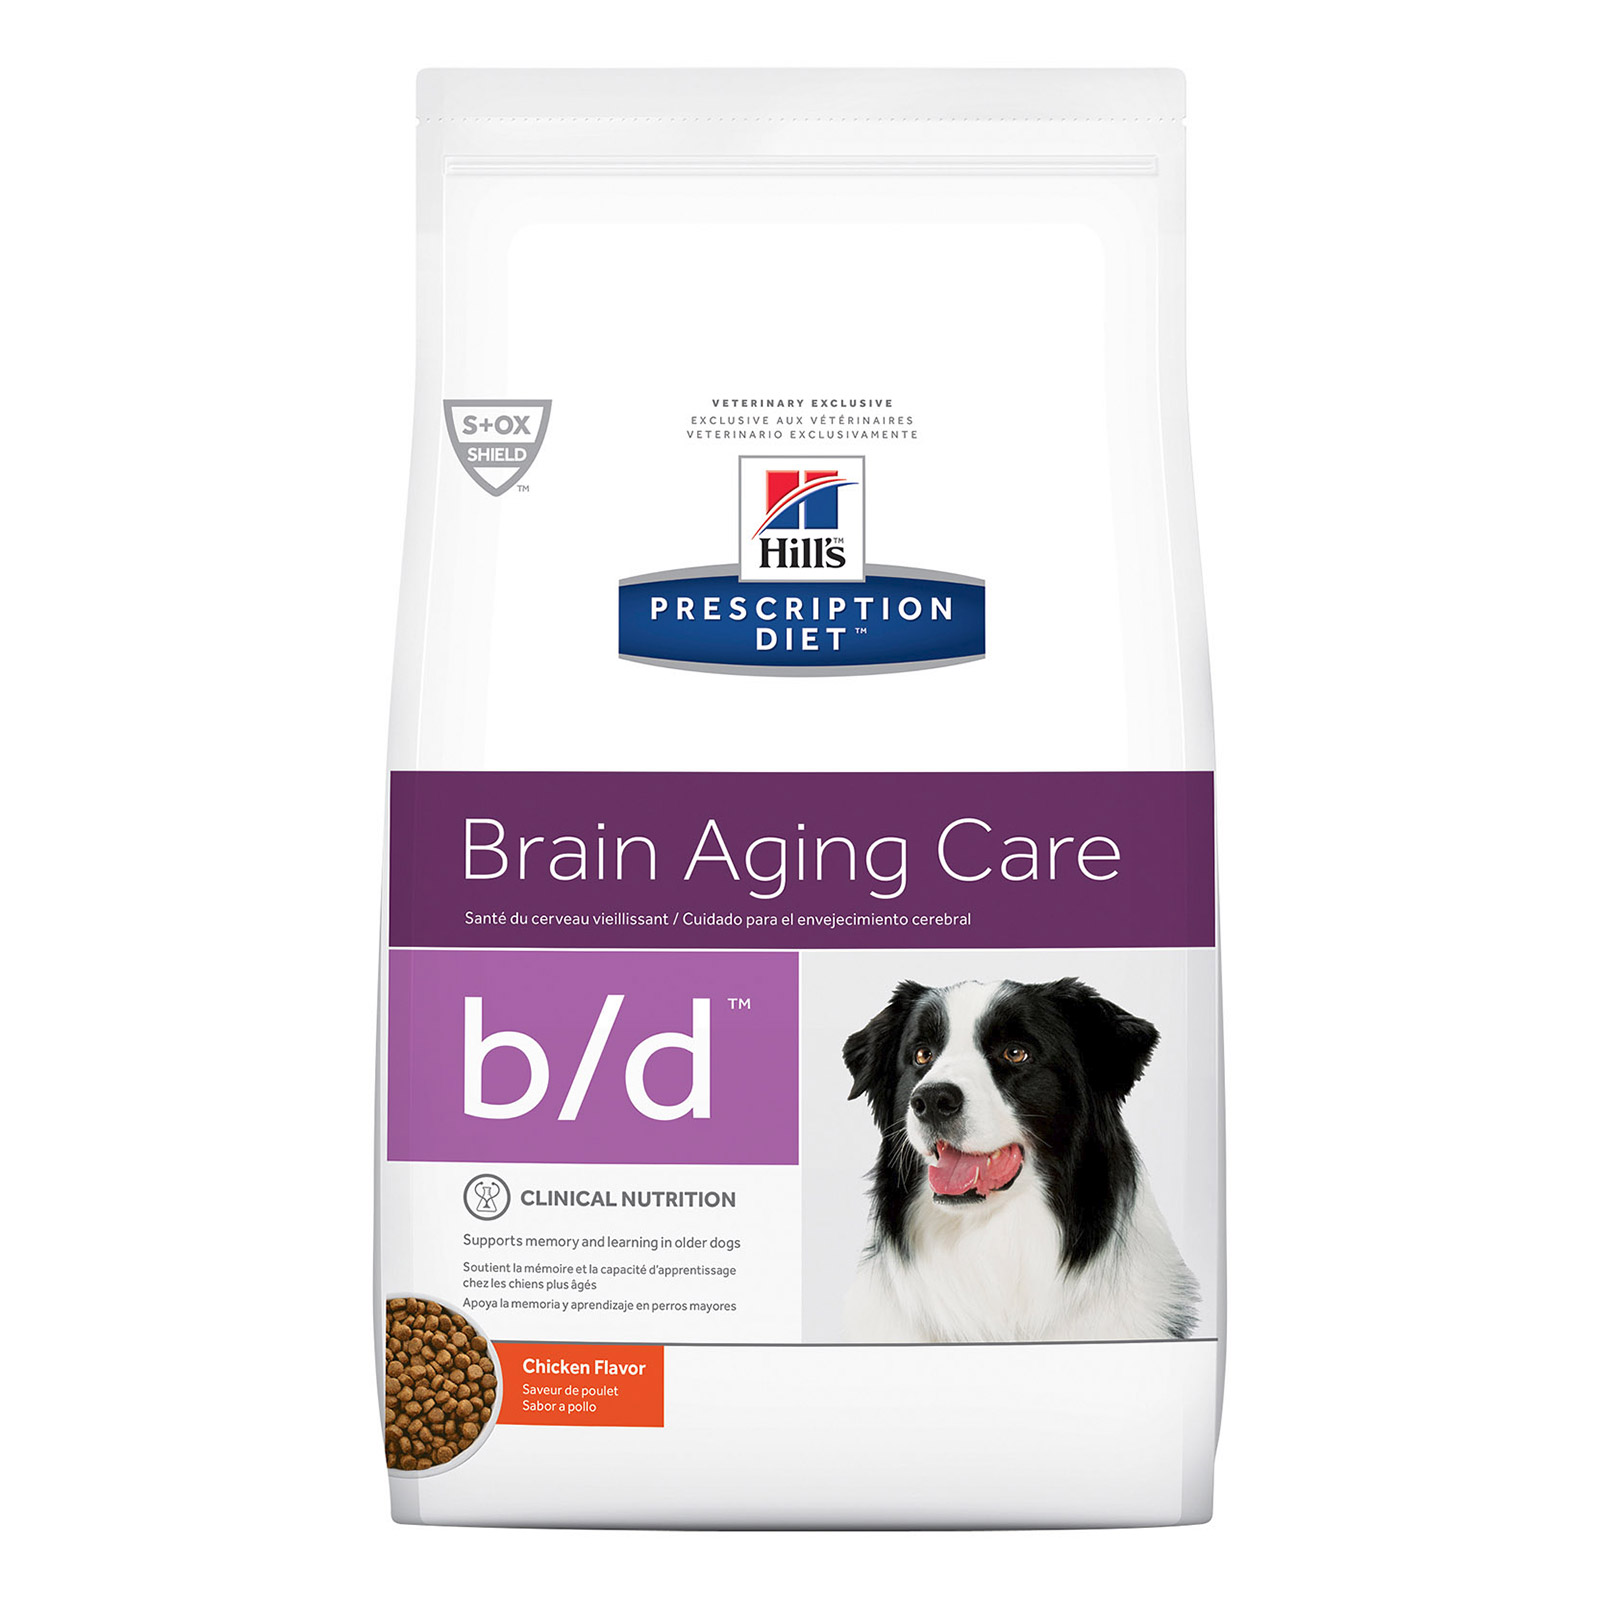 Hill's Prescription Diet b/d Brain Ageing Care with Chicken Dry Dog Food